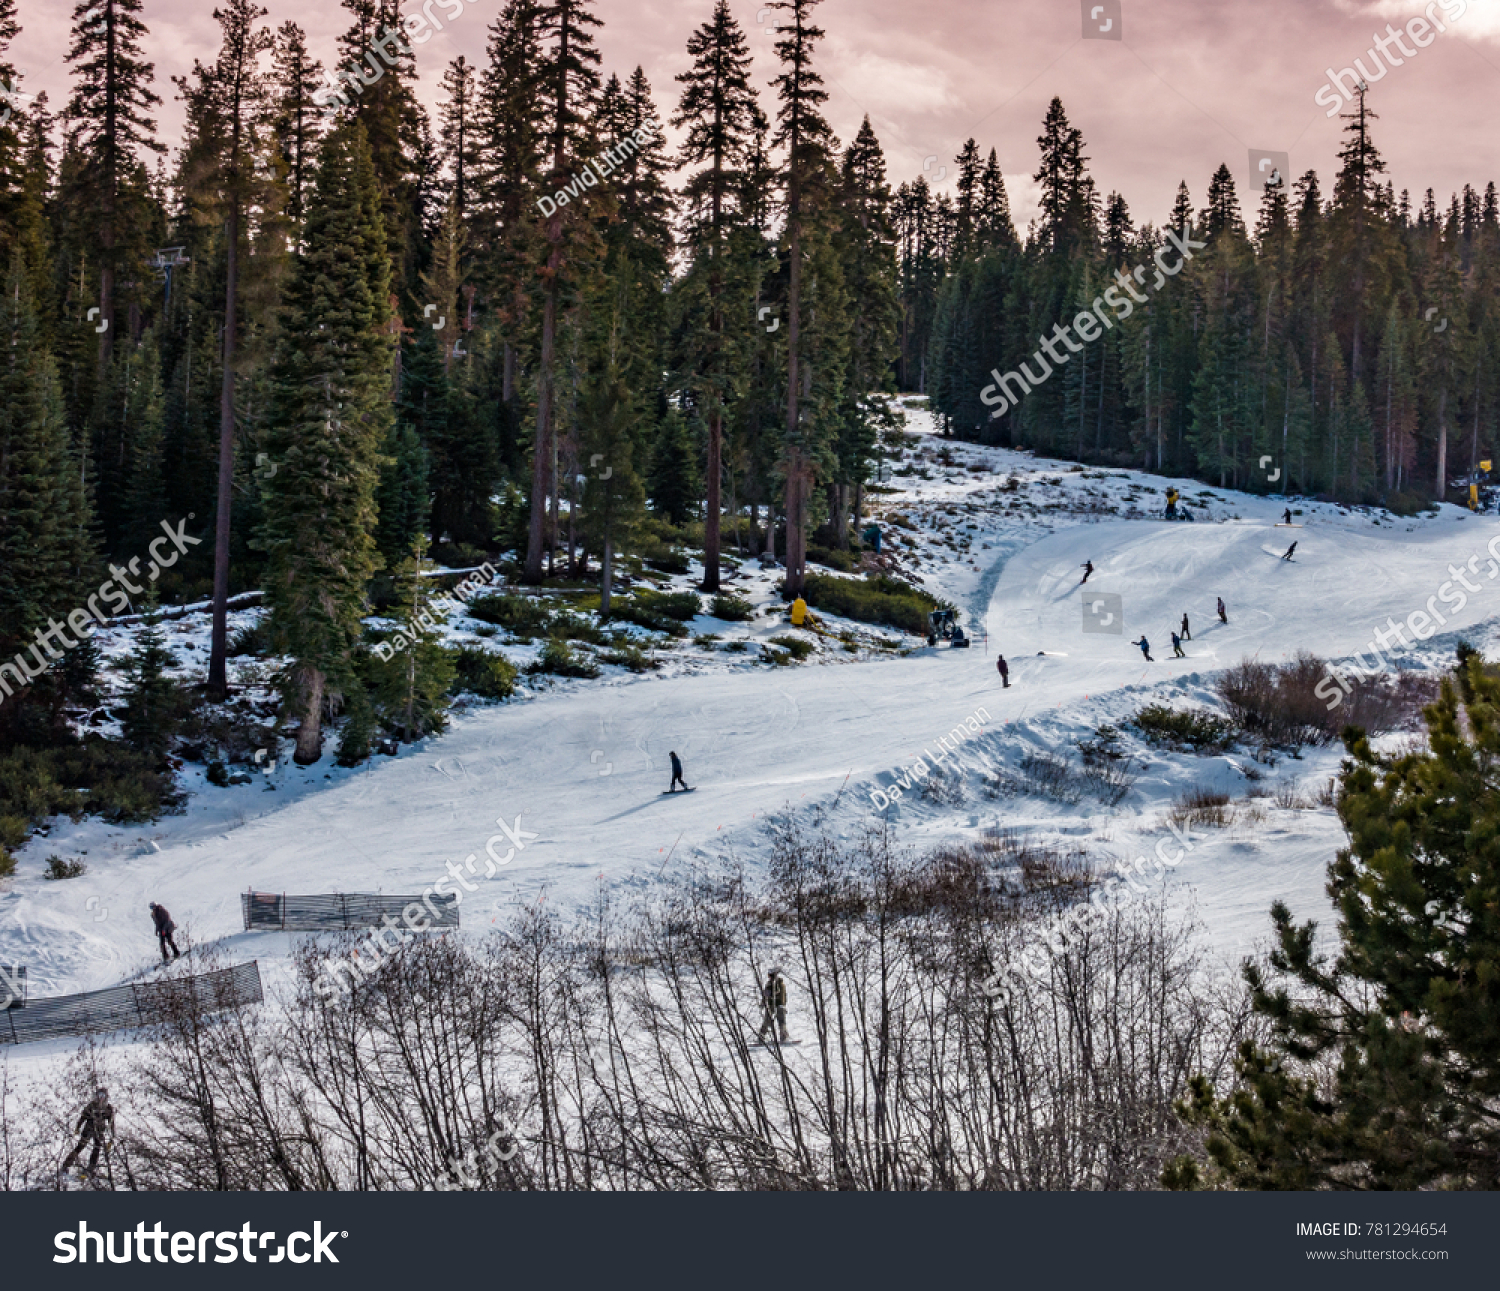 The slopes of Northstar Ski Resort, in the Sierra Nevada Mountains of Truckee California, near Lake Tahoe, with skiers (and snowboarders) skiing the ski runs in the late afternoon, before sunset